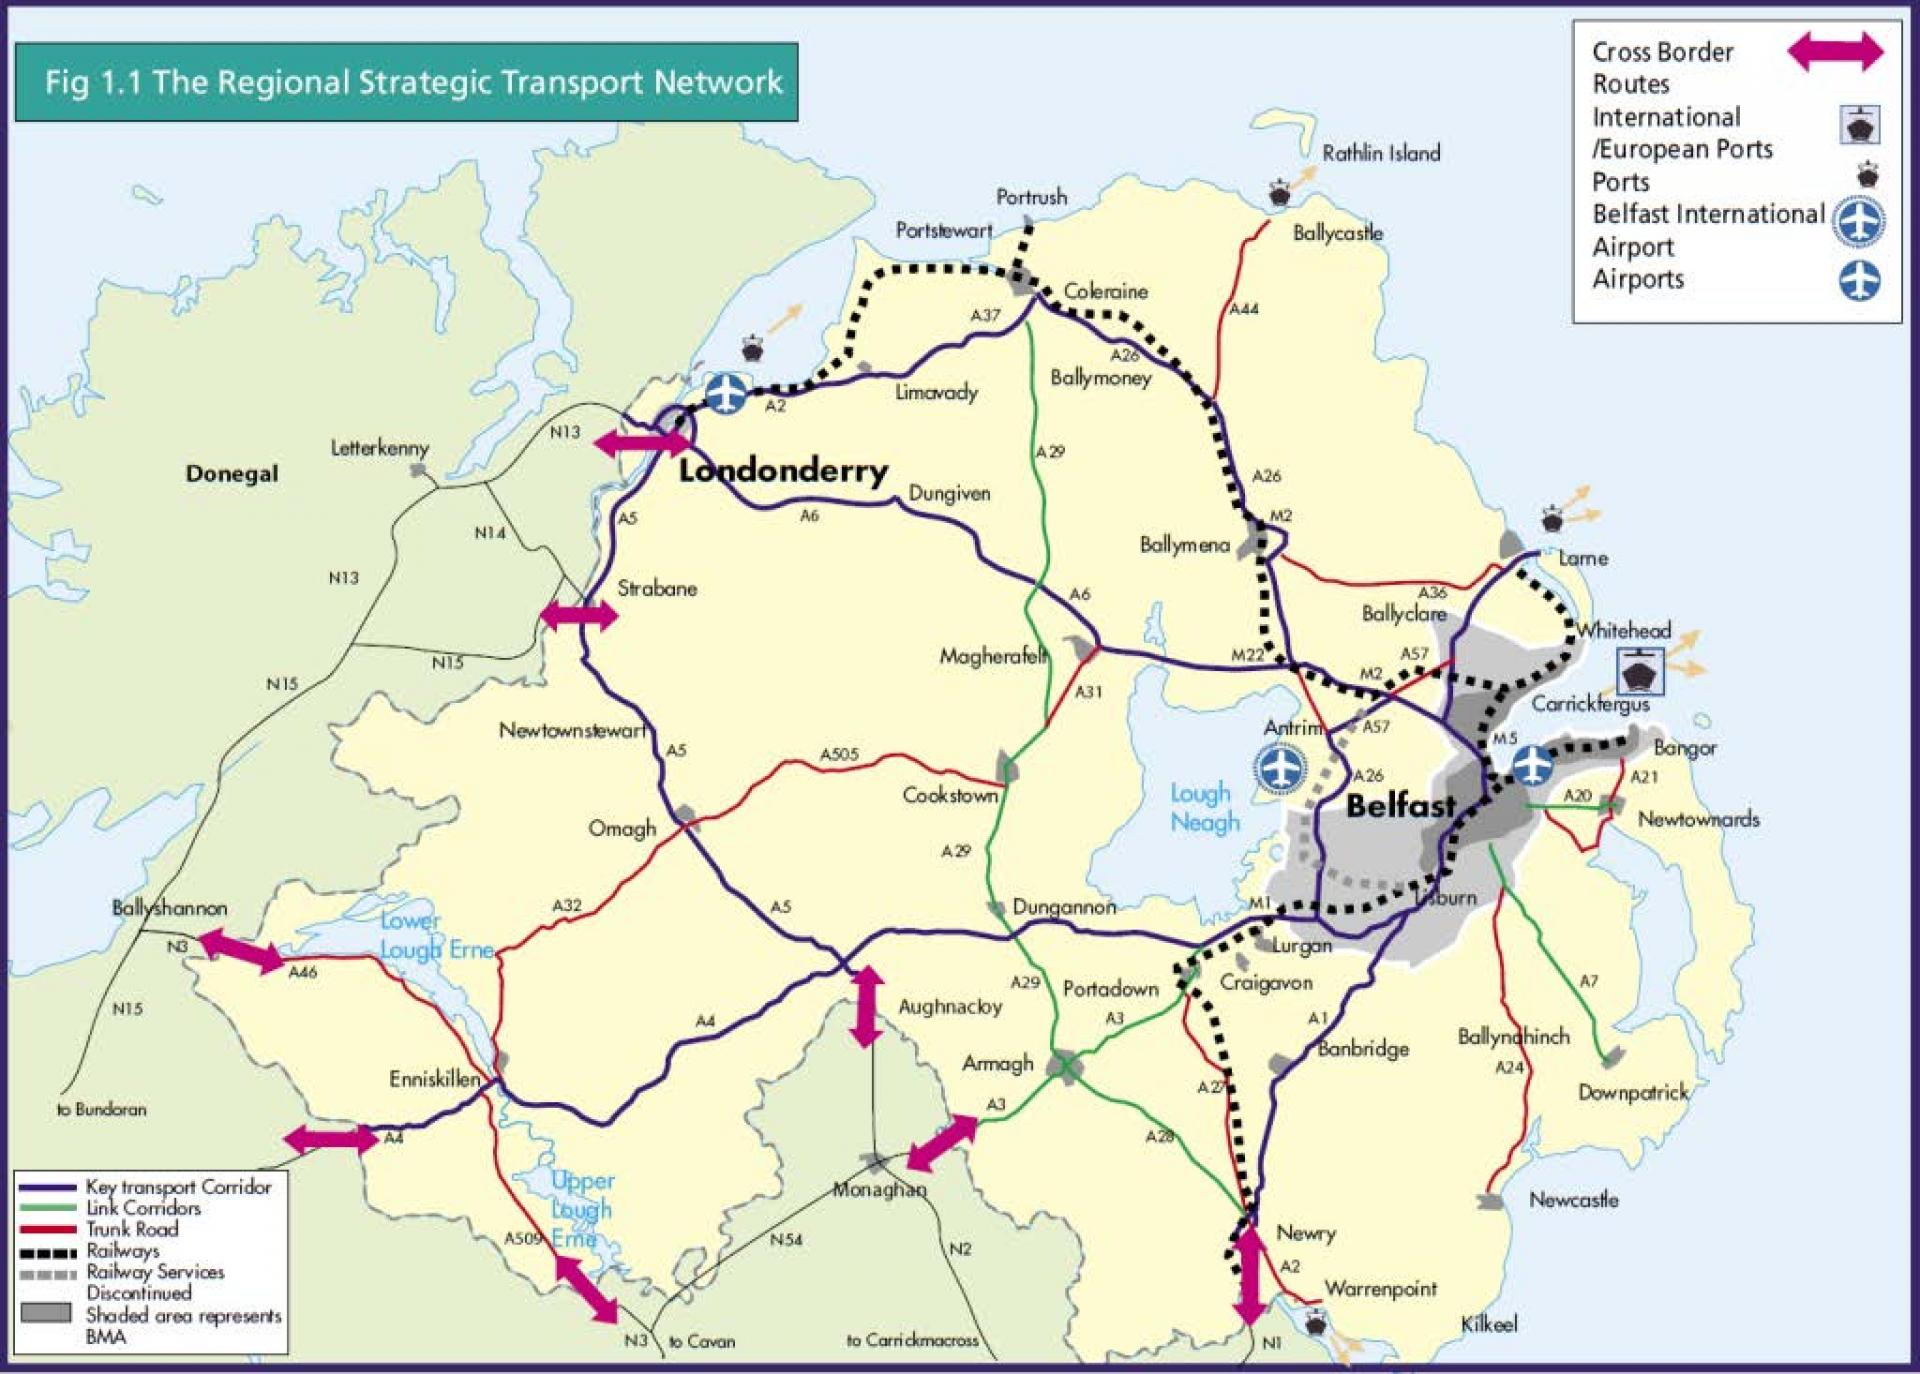 Regional Map Of Ireland.Regional Strategic Transport Network Department For Infrastructure